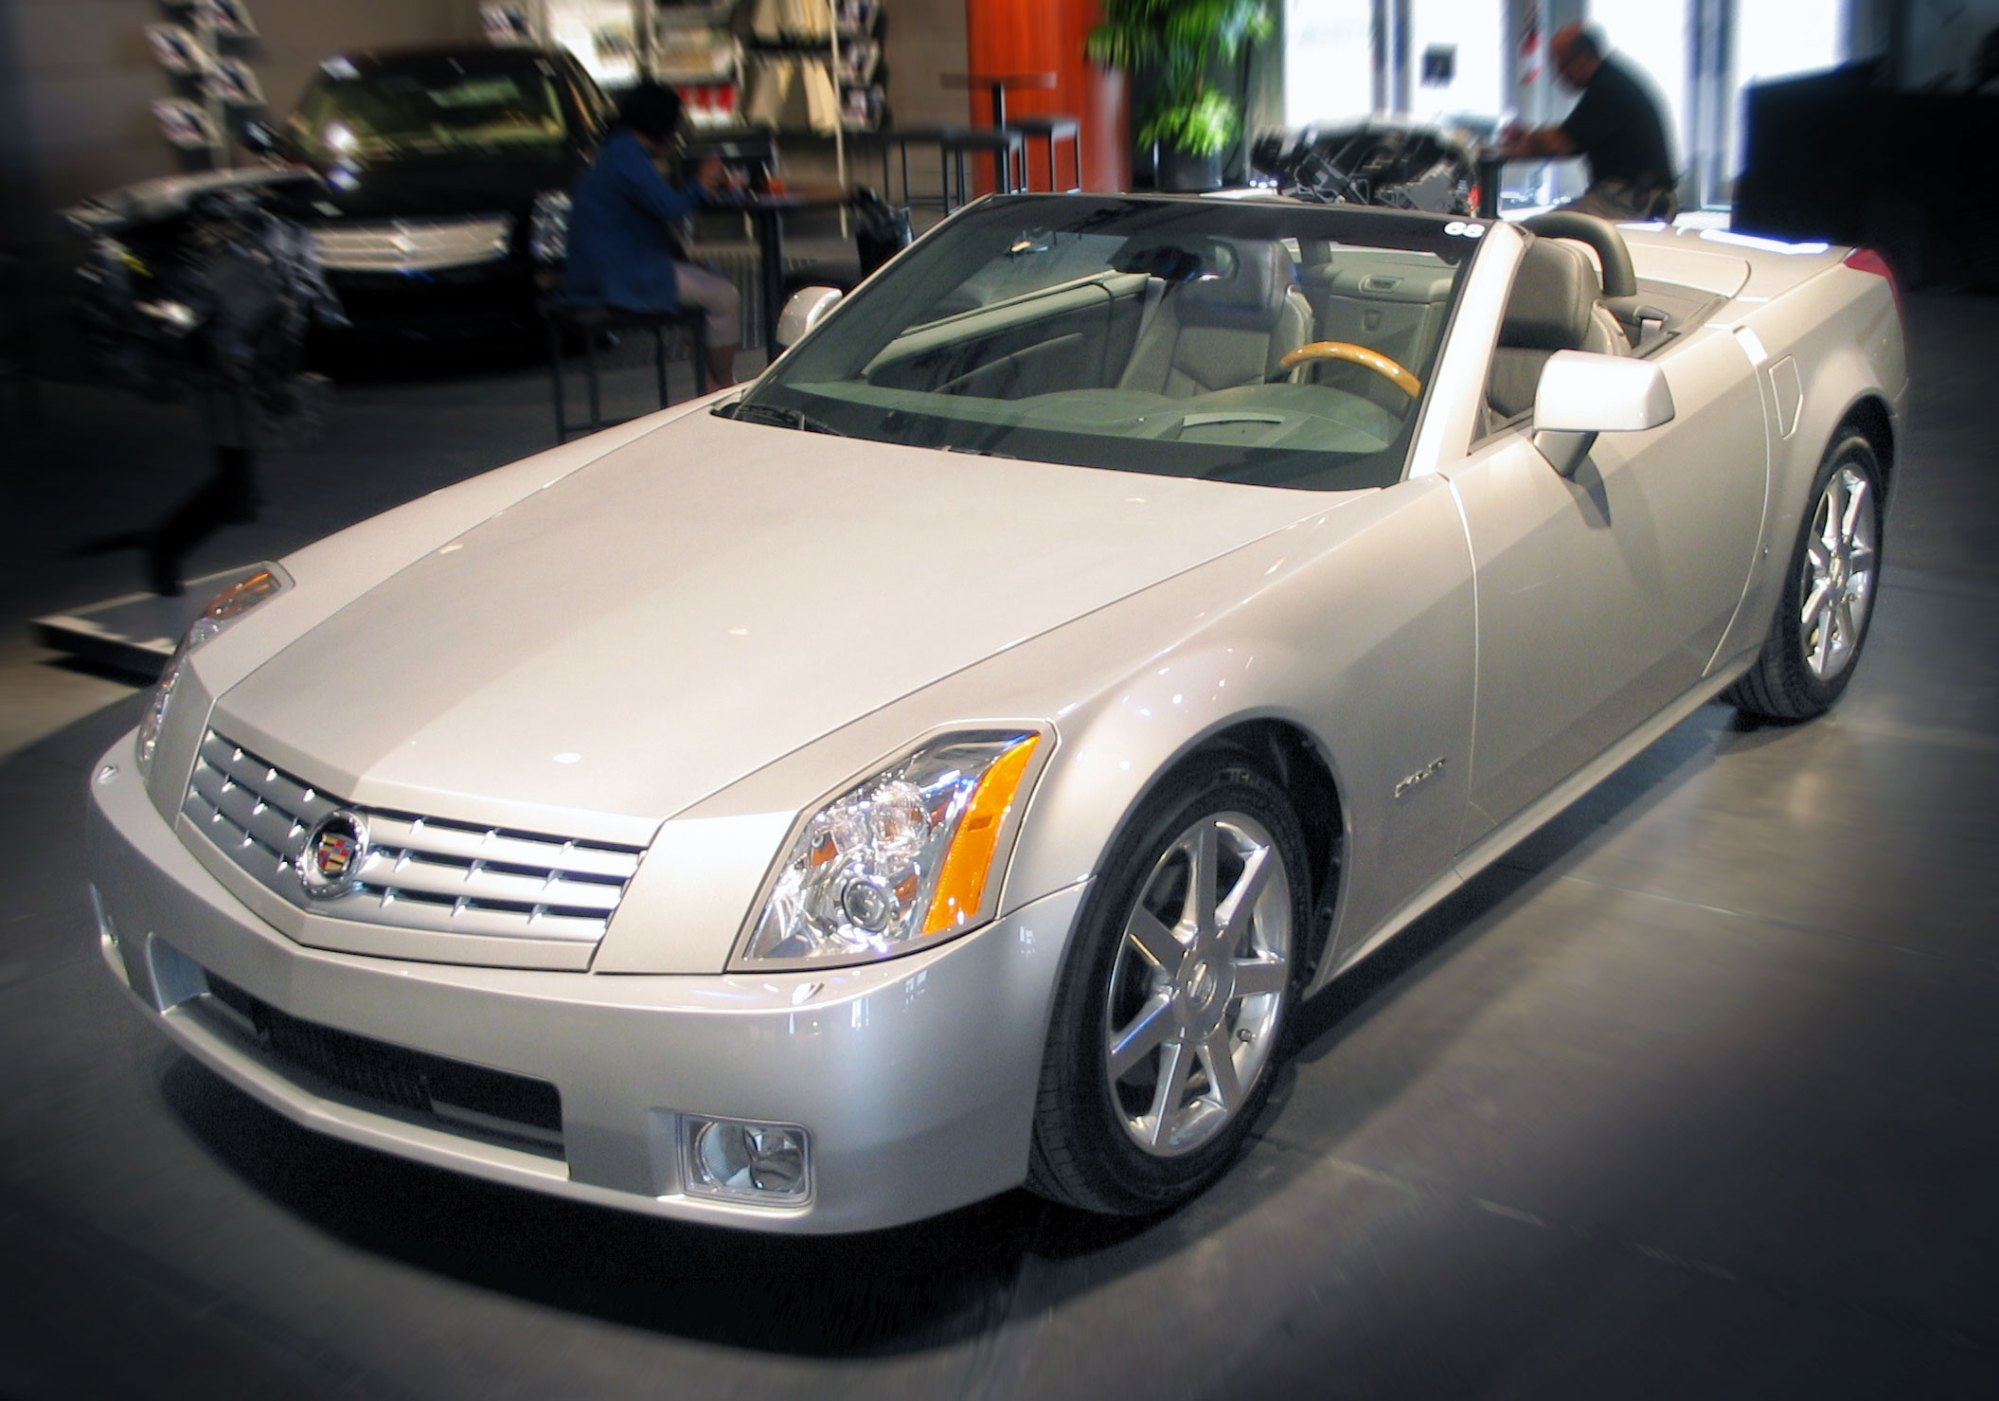 hight resolution of cadillac xlr wikipedia cadillac xlr engine diagram